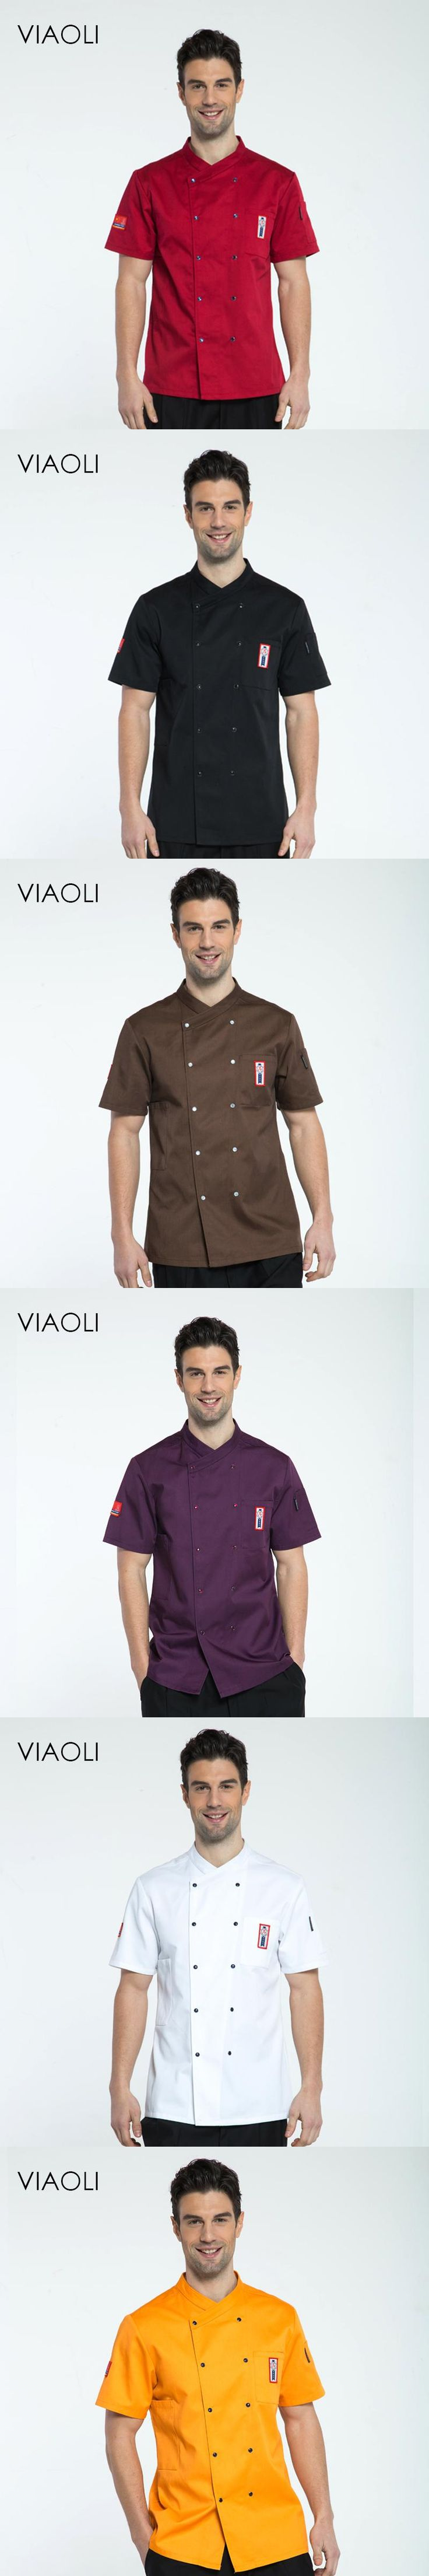 VIAOLI High Quality Chef Uniforms Clothing Short Sleeve Men Food Services Cooking Clothes 8-color Big Size Uniform Chef Jackets